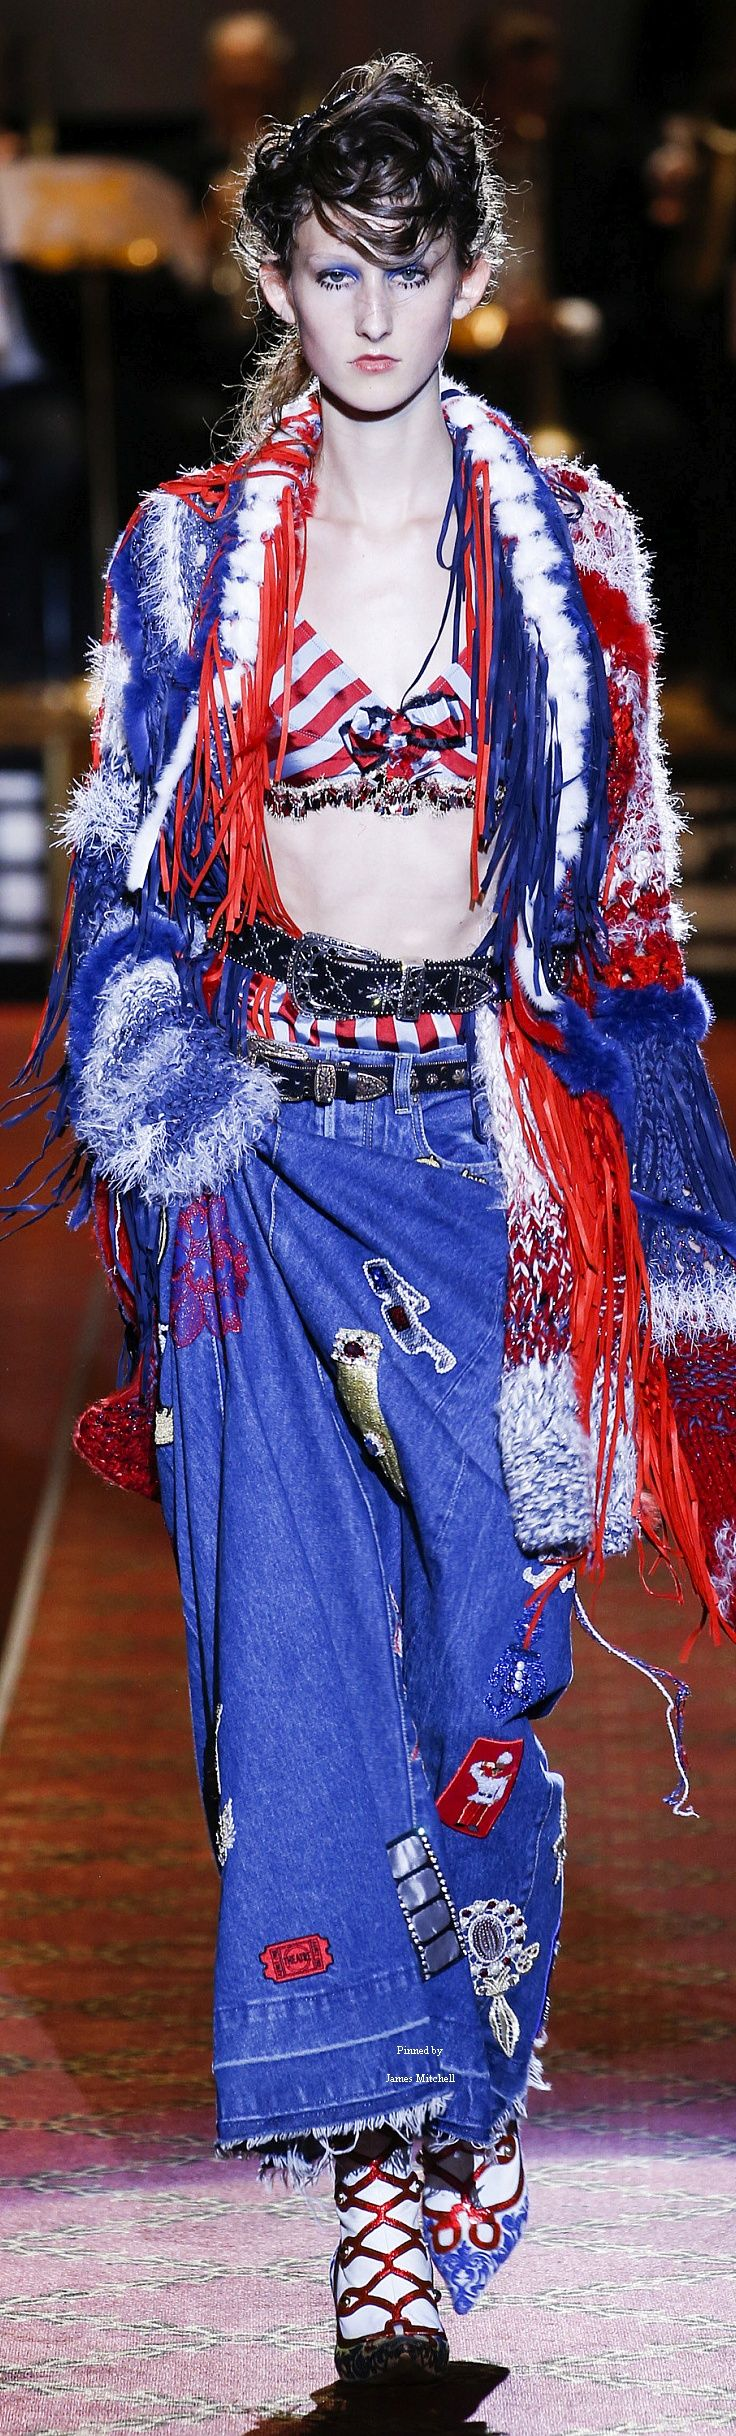 17 Best images about Marc Jacobs CollectionS on Pinterest ...